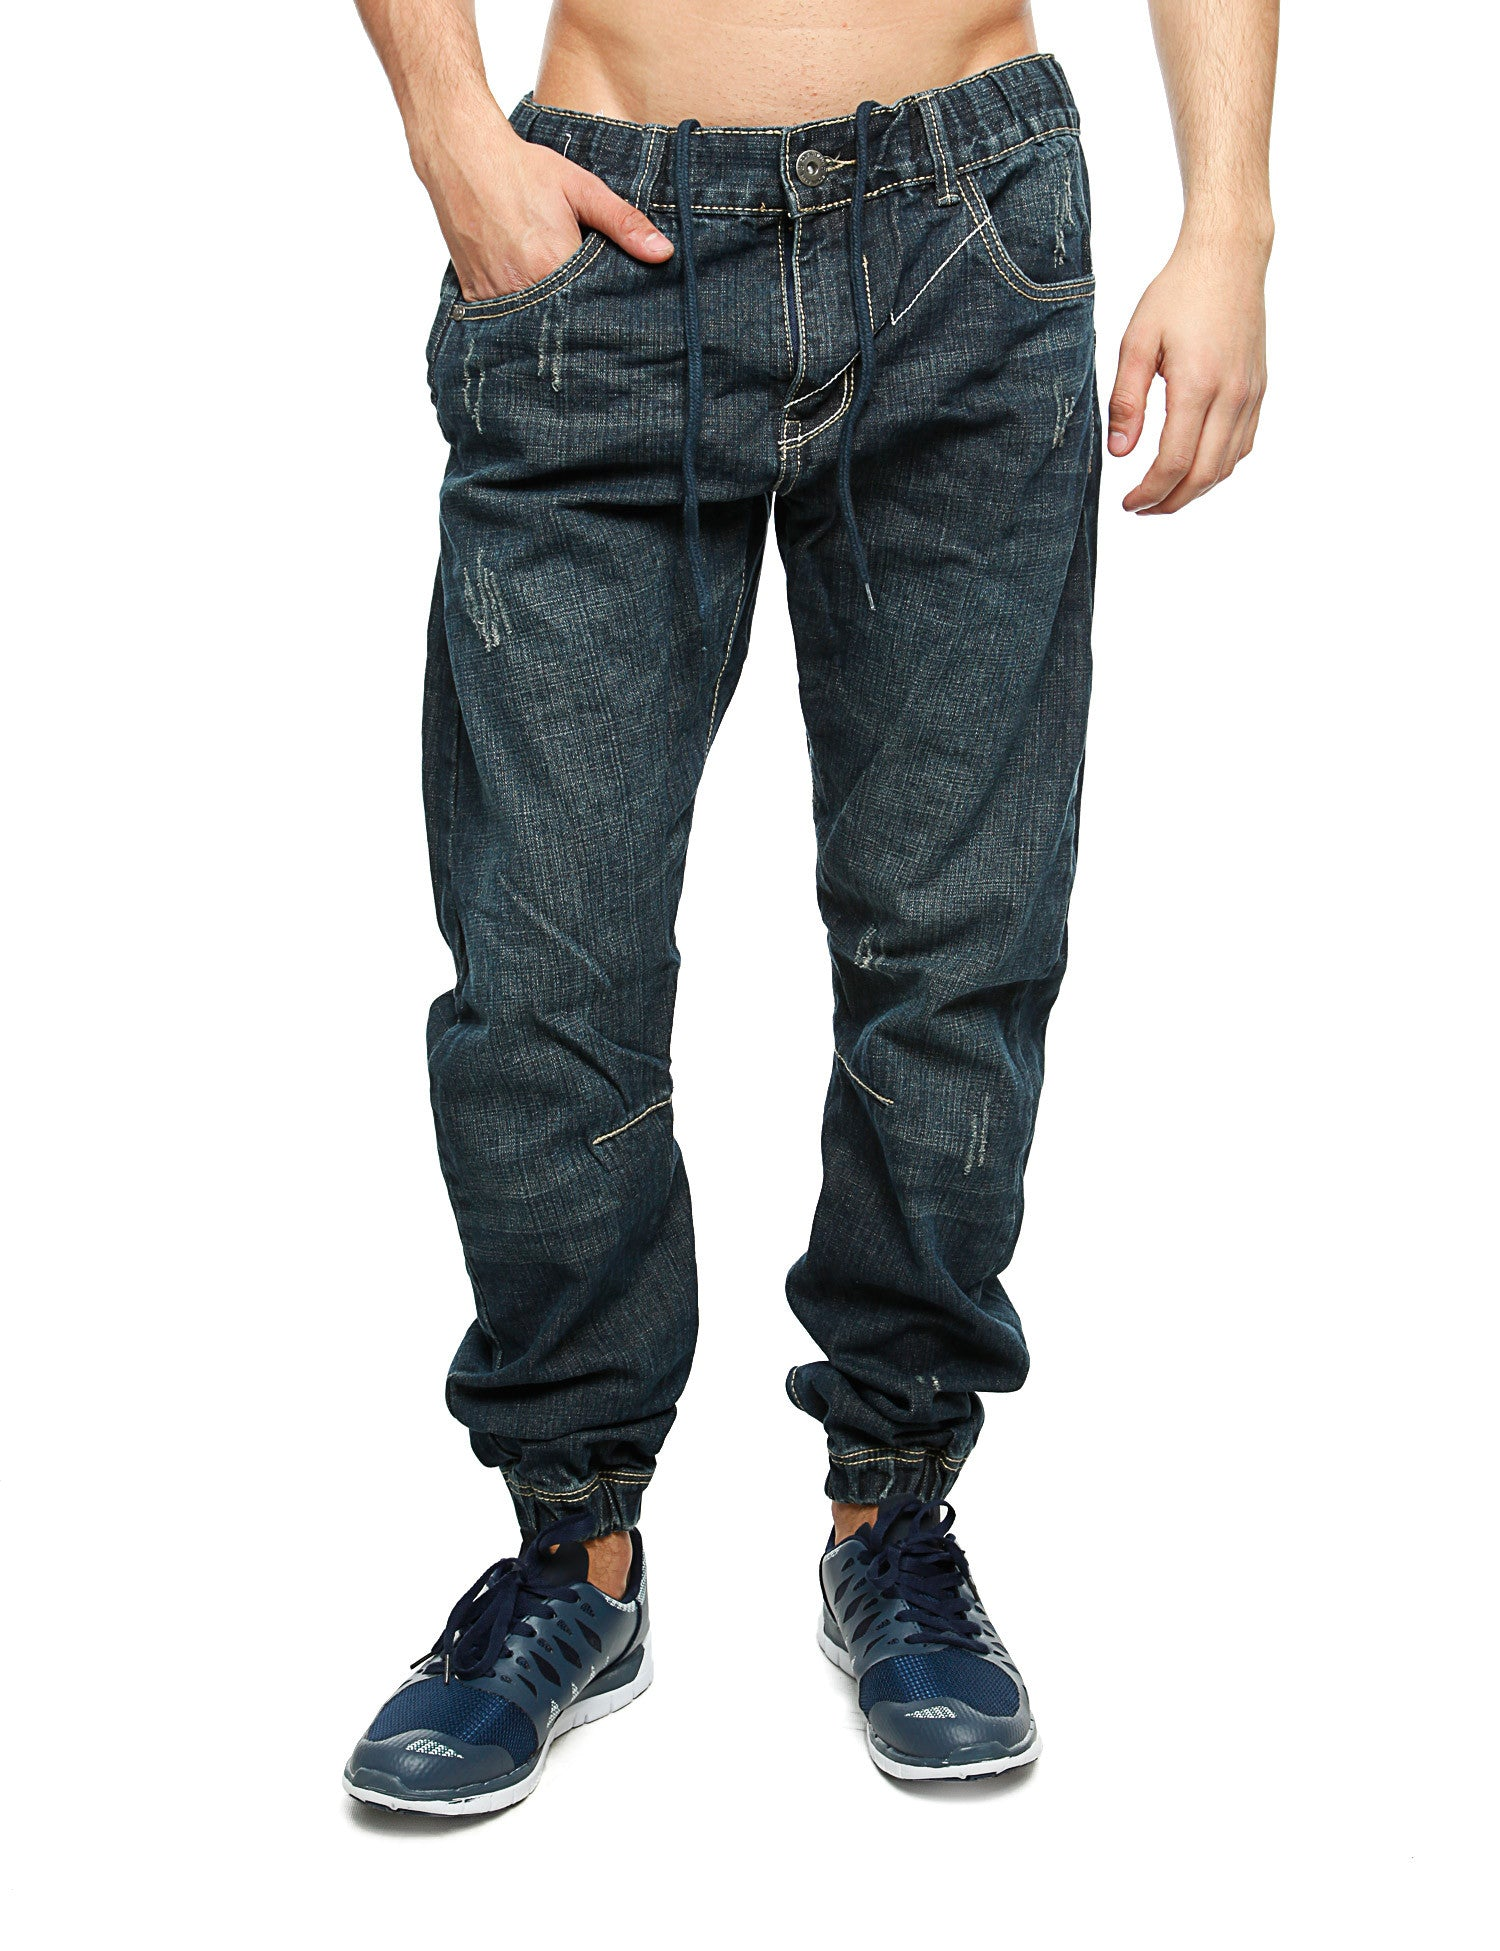 Royal Blue Denim Sweatpant 87012 Blue